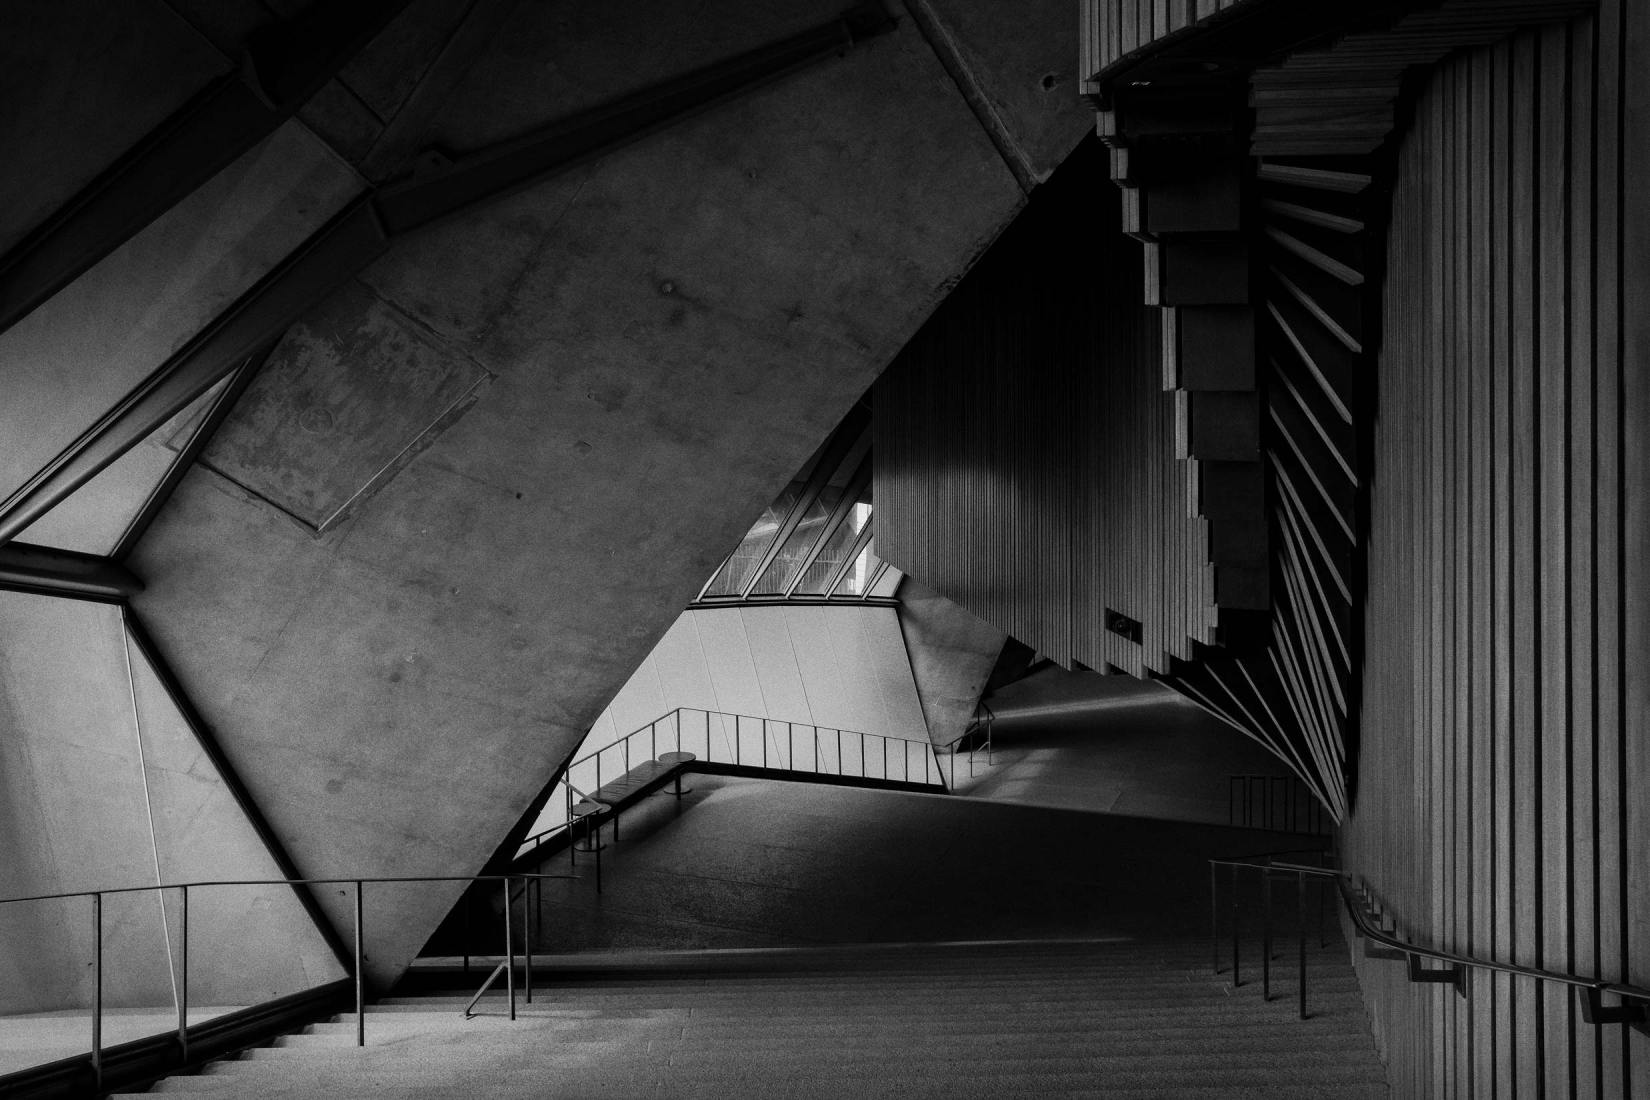 PWS026-186-Melbourne-photographer-Sharon-Blance-Sydney-Opera-House-copy